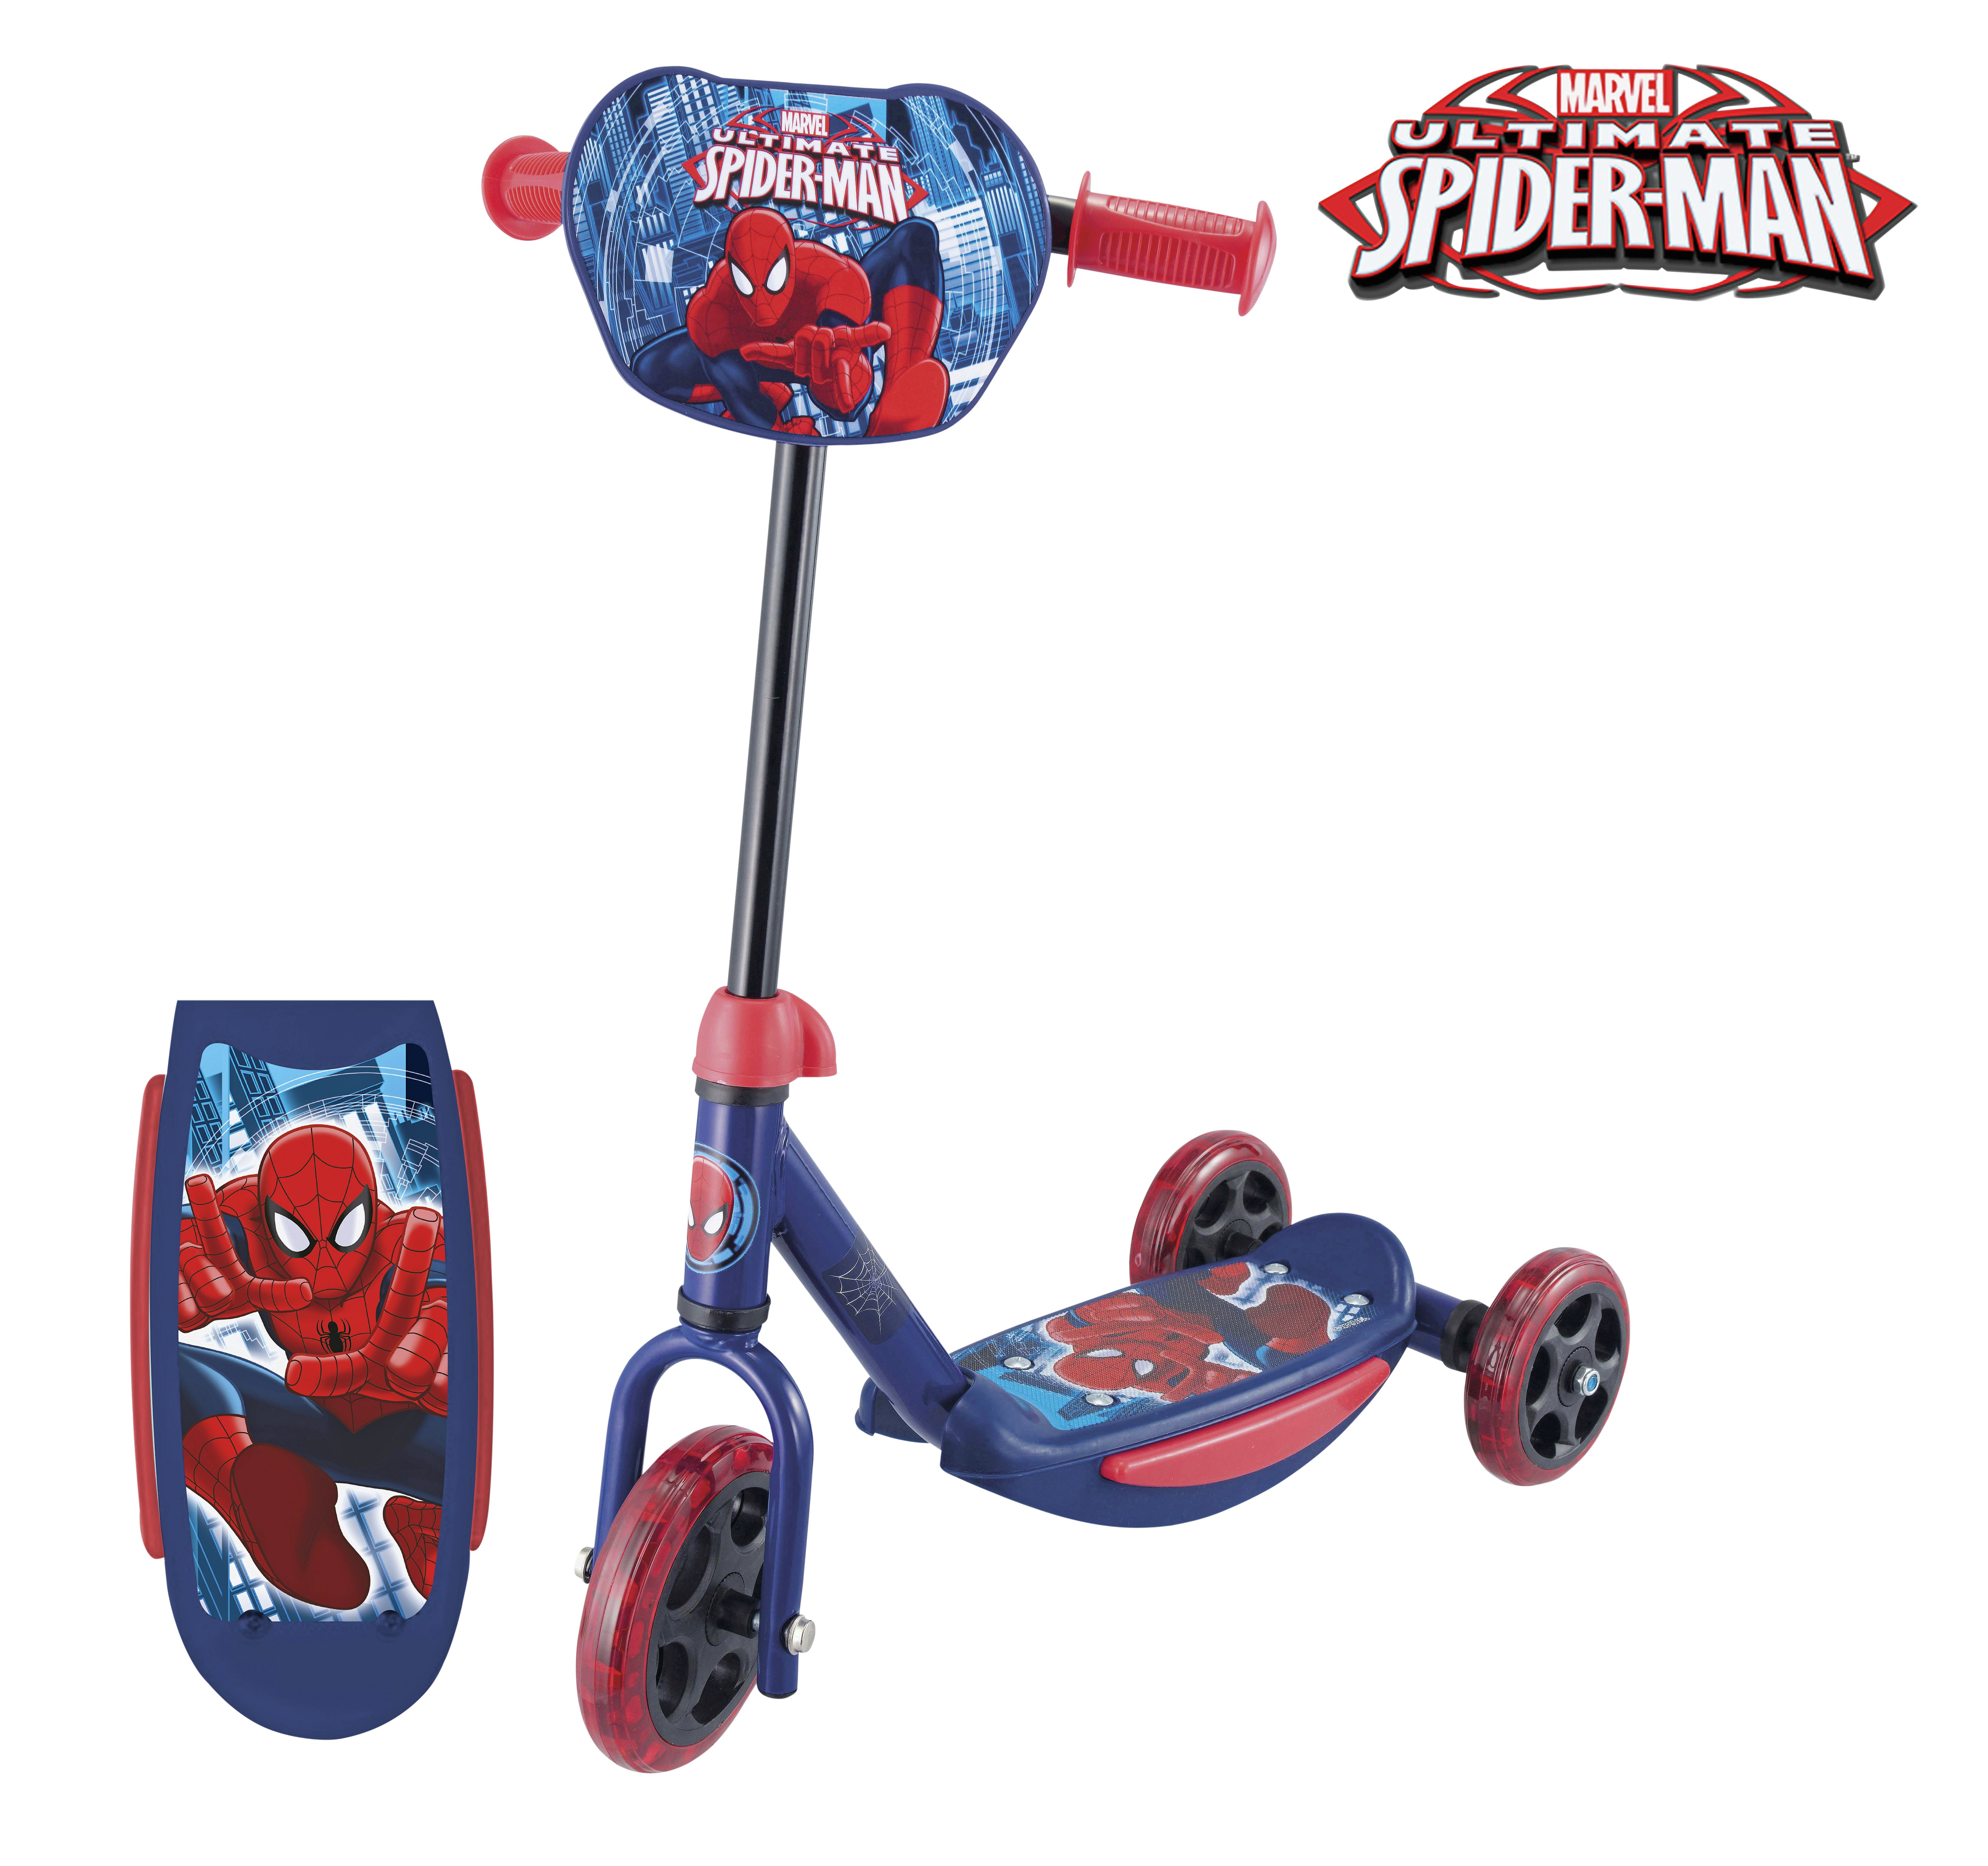 Spider-Man Scooter - Red